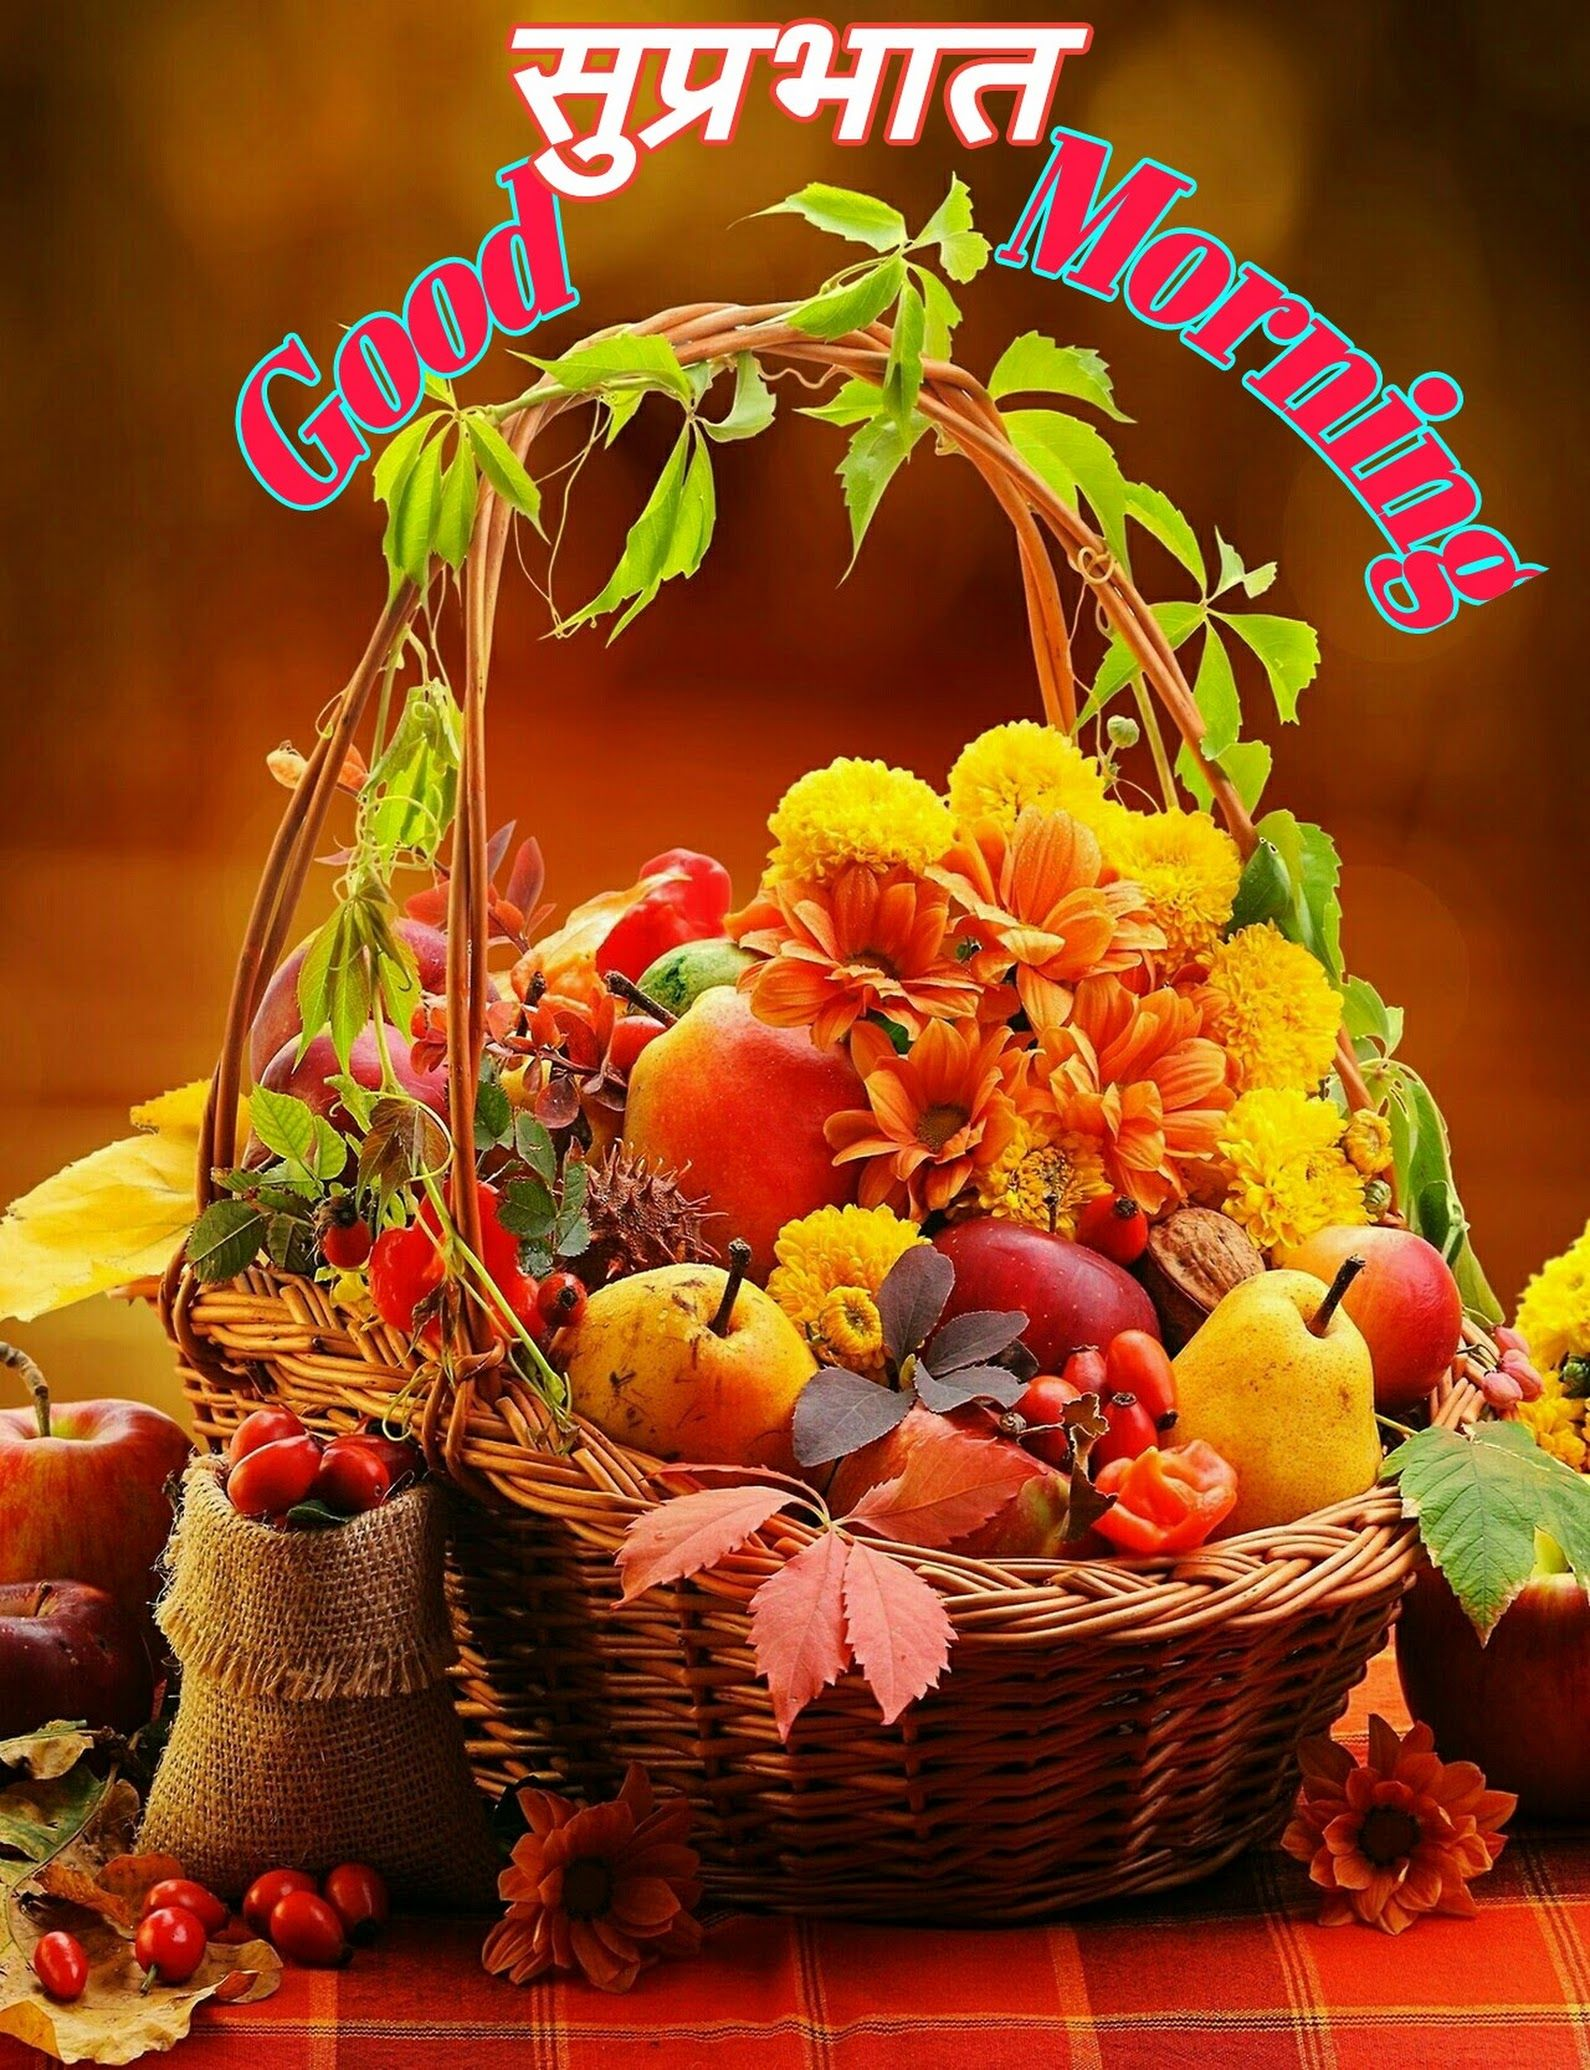 Good Morning Quotes With Fruits: Pin By Mousumi Manna On Good Morning